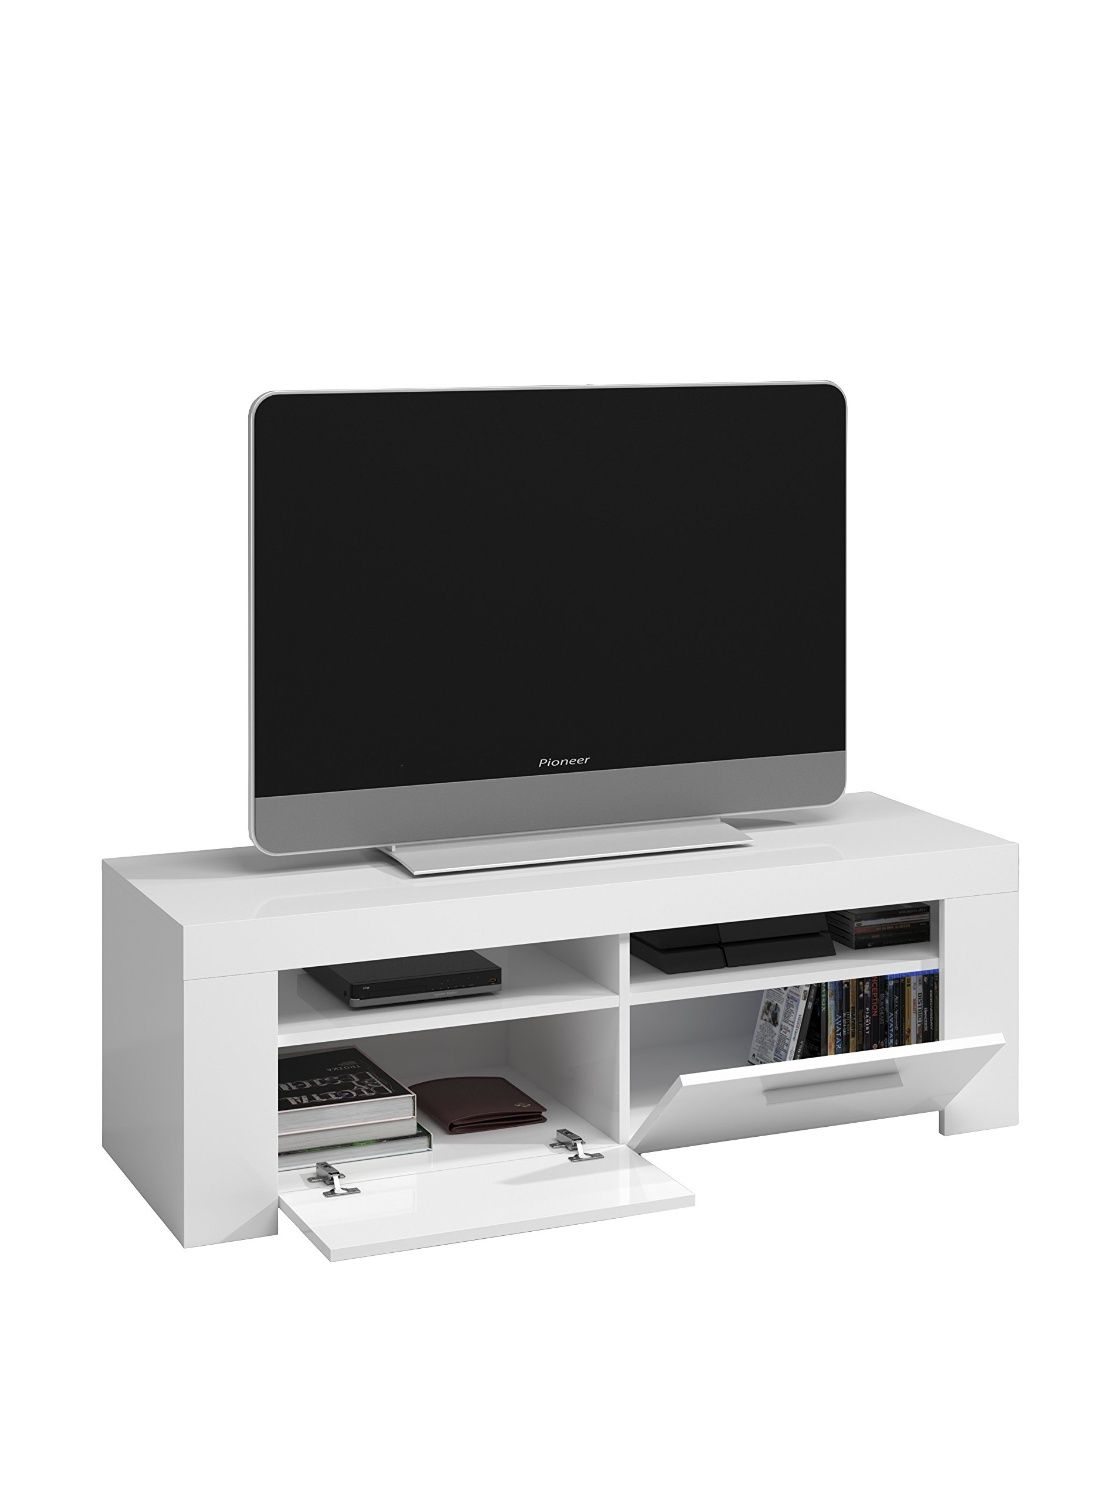 Meuble Tv High Tech - G N Rique Diamentino Meuble Tv 120cm 2 Niches Blanc Amazon Fr [mjhdah]http://www.beerandrail.com/wp-content/uploads/2018/02/meuble-tv-meliconi-ghost-design-2000-elegant-meubles-tv-high-tech-amazon-of-meuble-tv-meliconi-ghost-design-2000.jpg